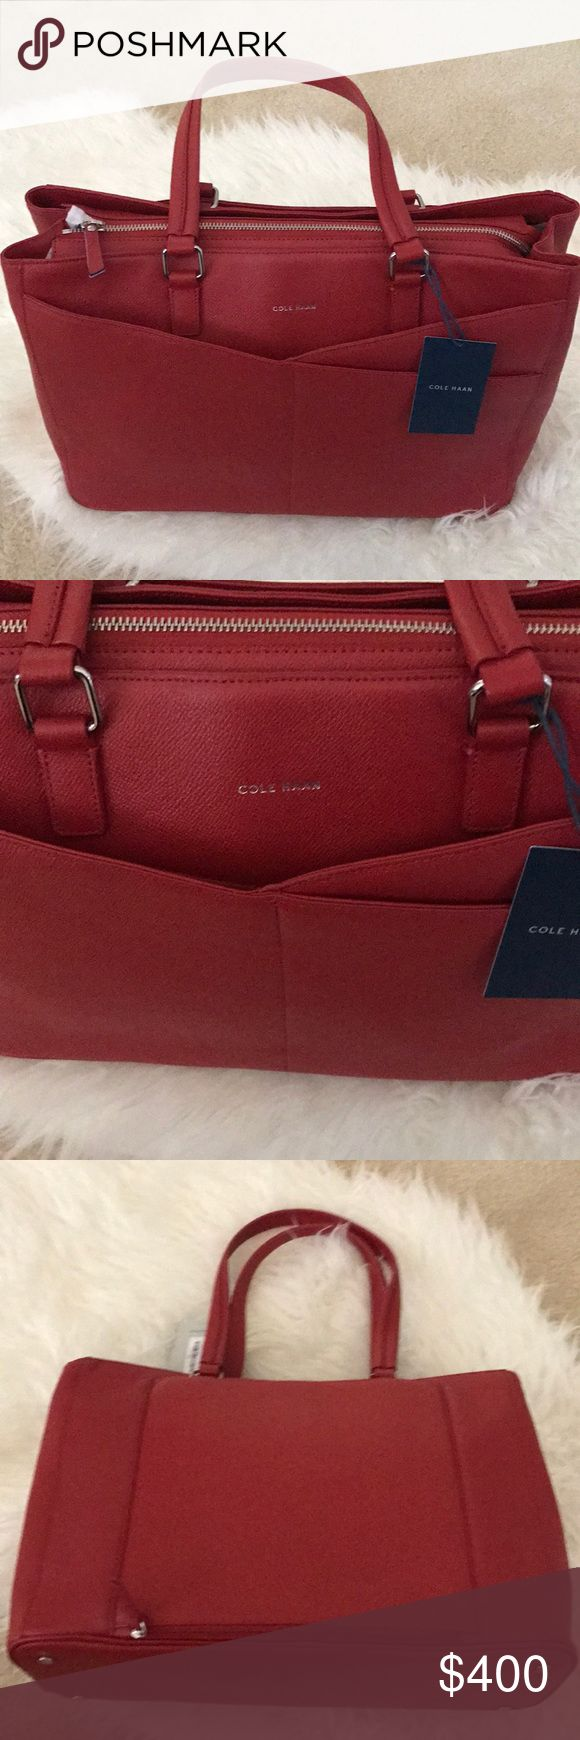 Cole Haan Leather Tote/Travel Bag This unique Red Cole Hann bag is brand new and never used. You won't see anyone else wearing this bag because it was specifically designed for American Airlines and was gifted to only the flight attendants. This bag cannot be bought anywhere. It is beautifully designed with travel and mind. It has a zippered opening on the back so it can easily slide onto the handle of a wheeled carry-on suitcase. It has built in RFID Technology into the credit card slots…